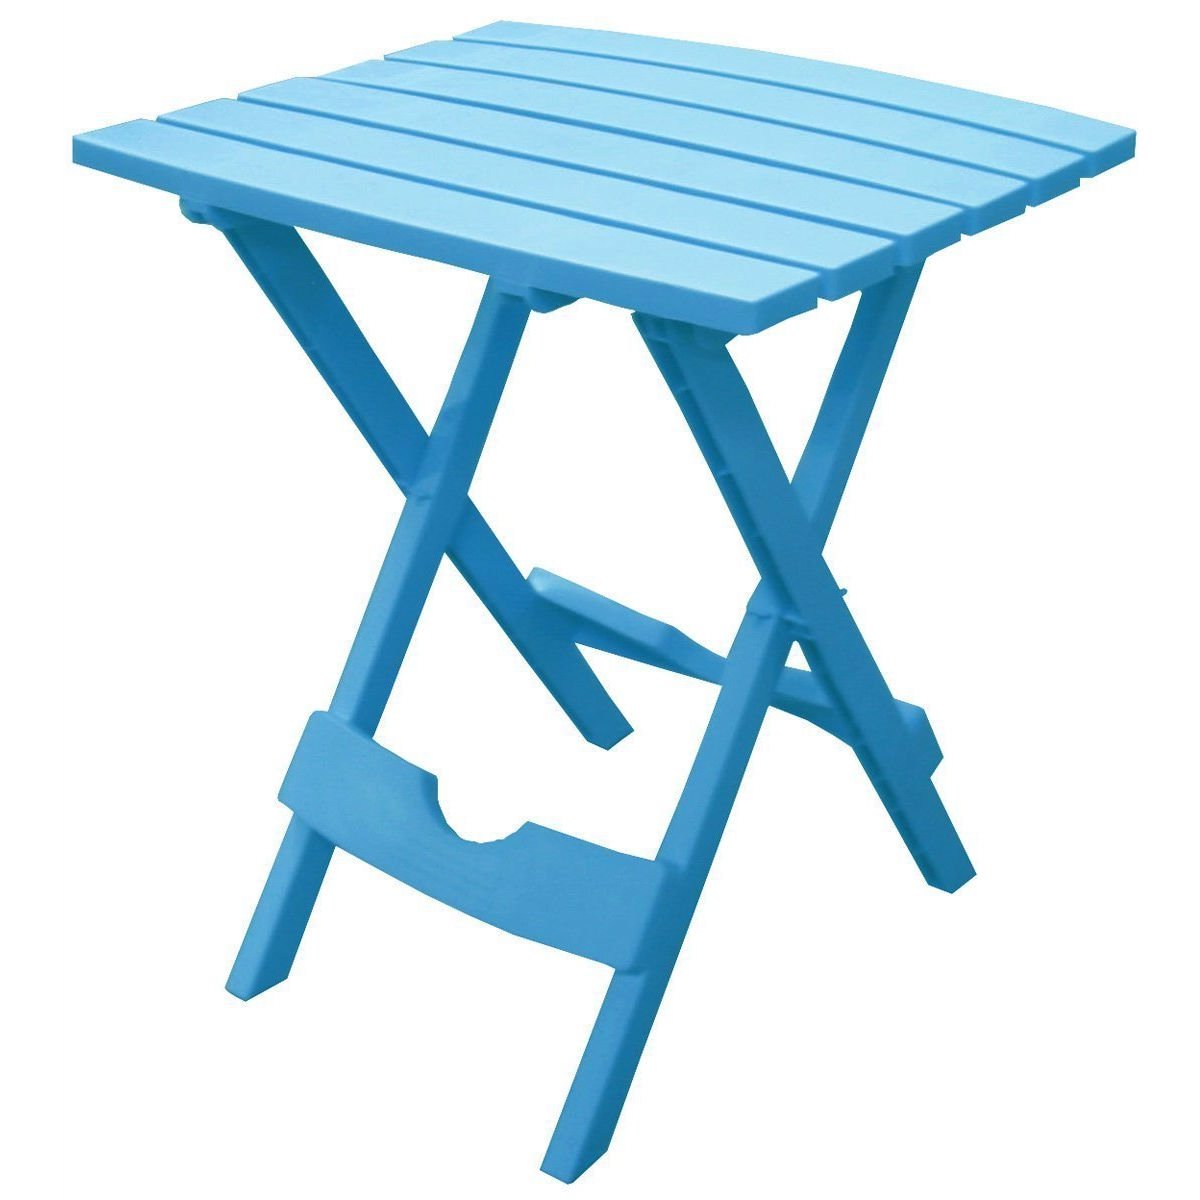 Pool Blue Folding Side Table In Durable Patio Furniture Plastic Resin |  FastFurnishings.com